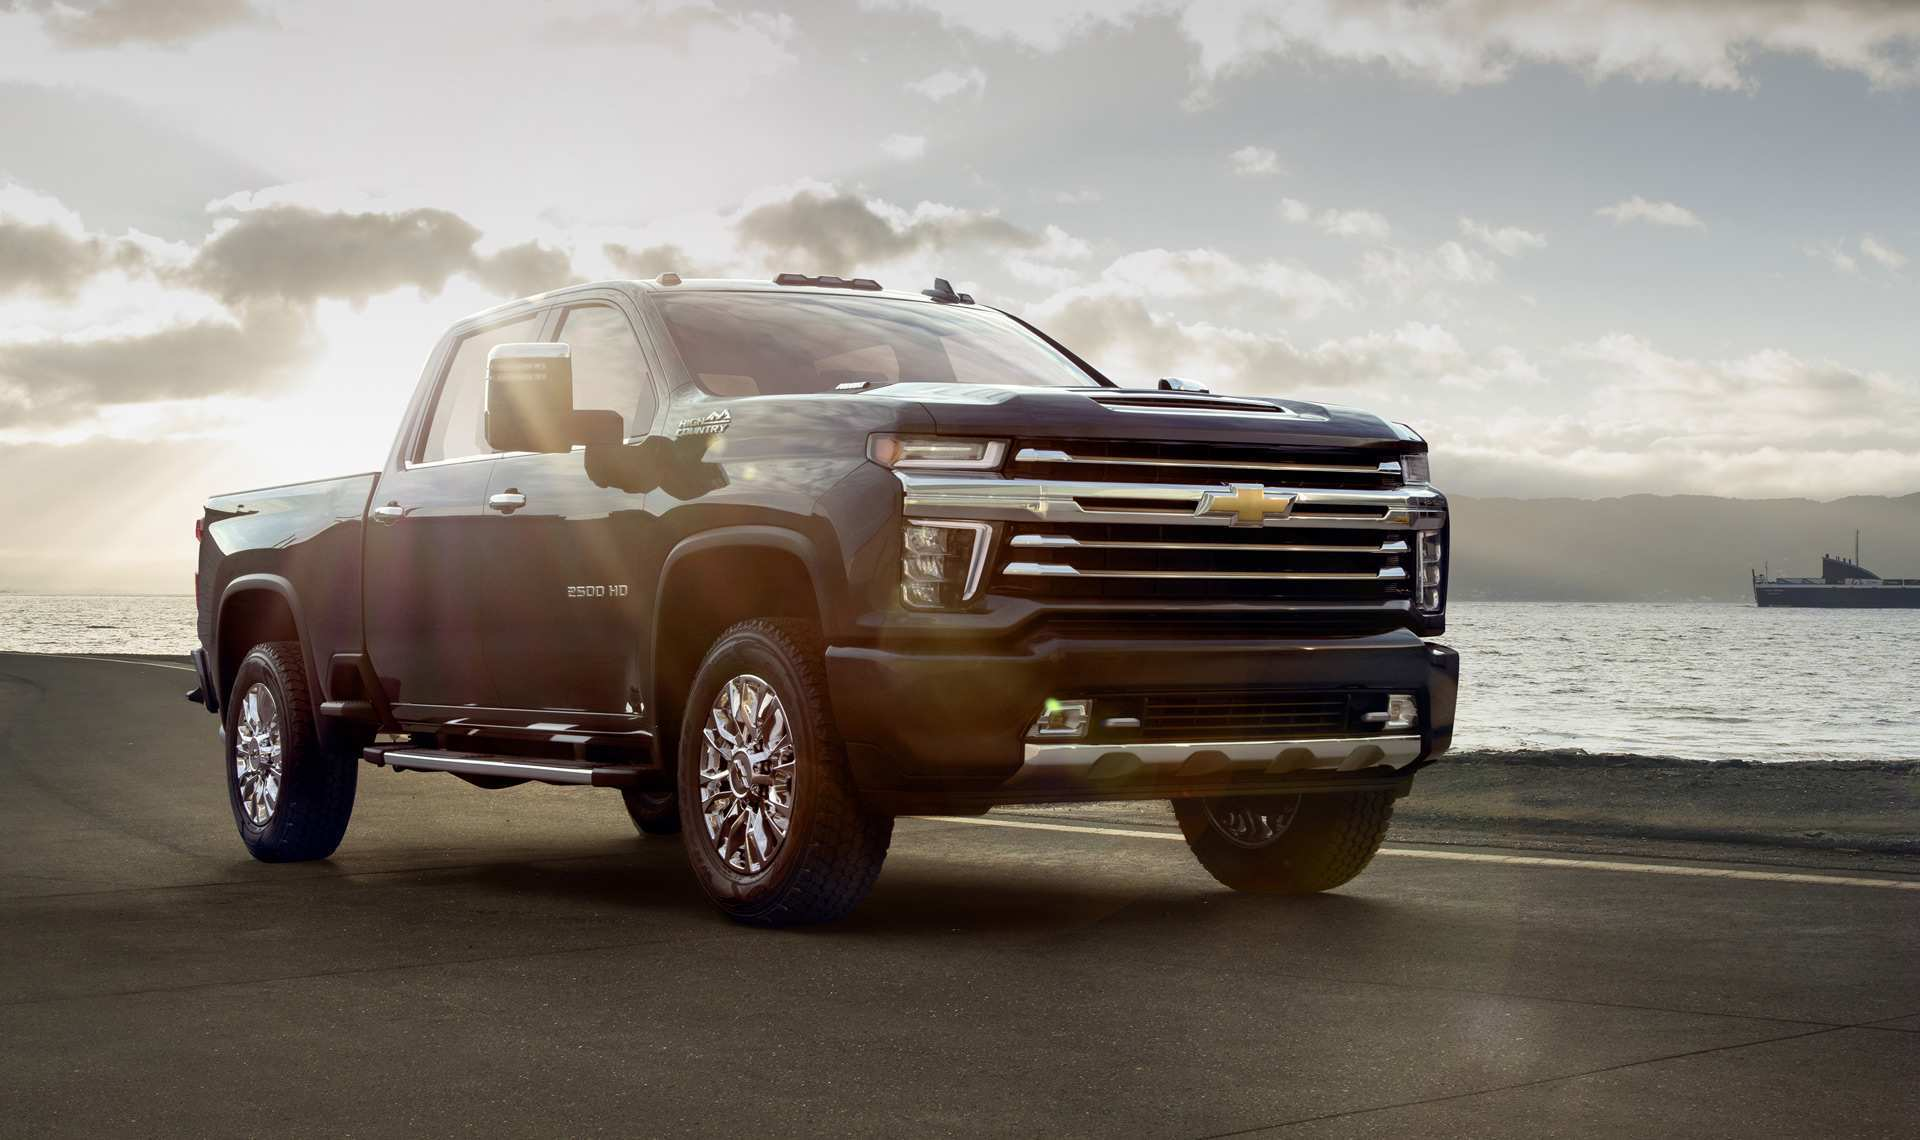 23 Best Review 2020 Chevy Duramax Style with 2020 Chevy Duramax